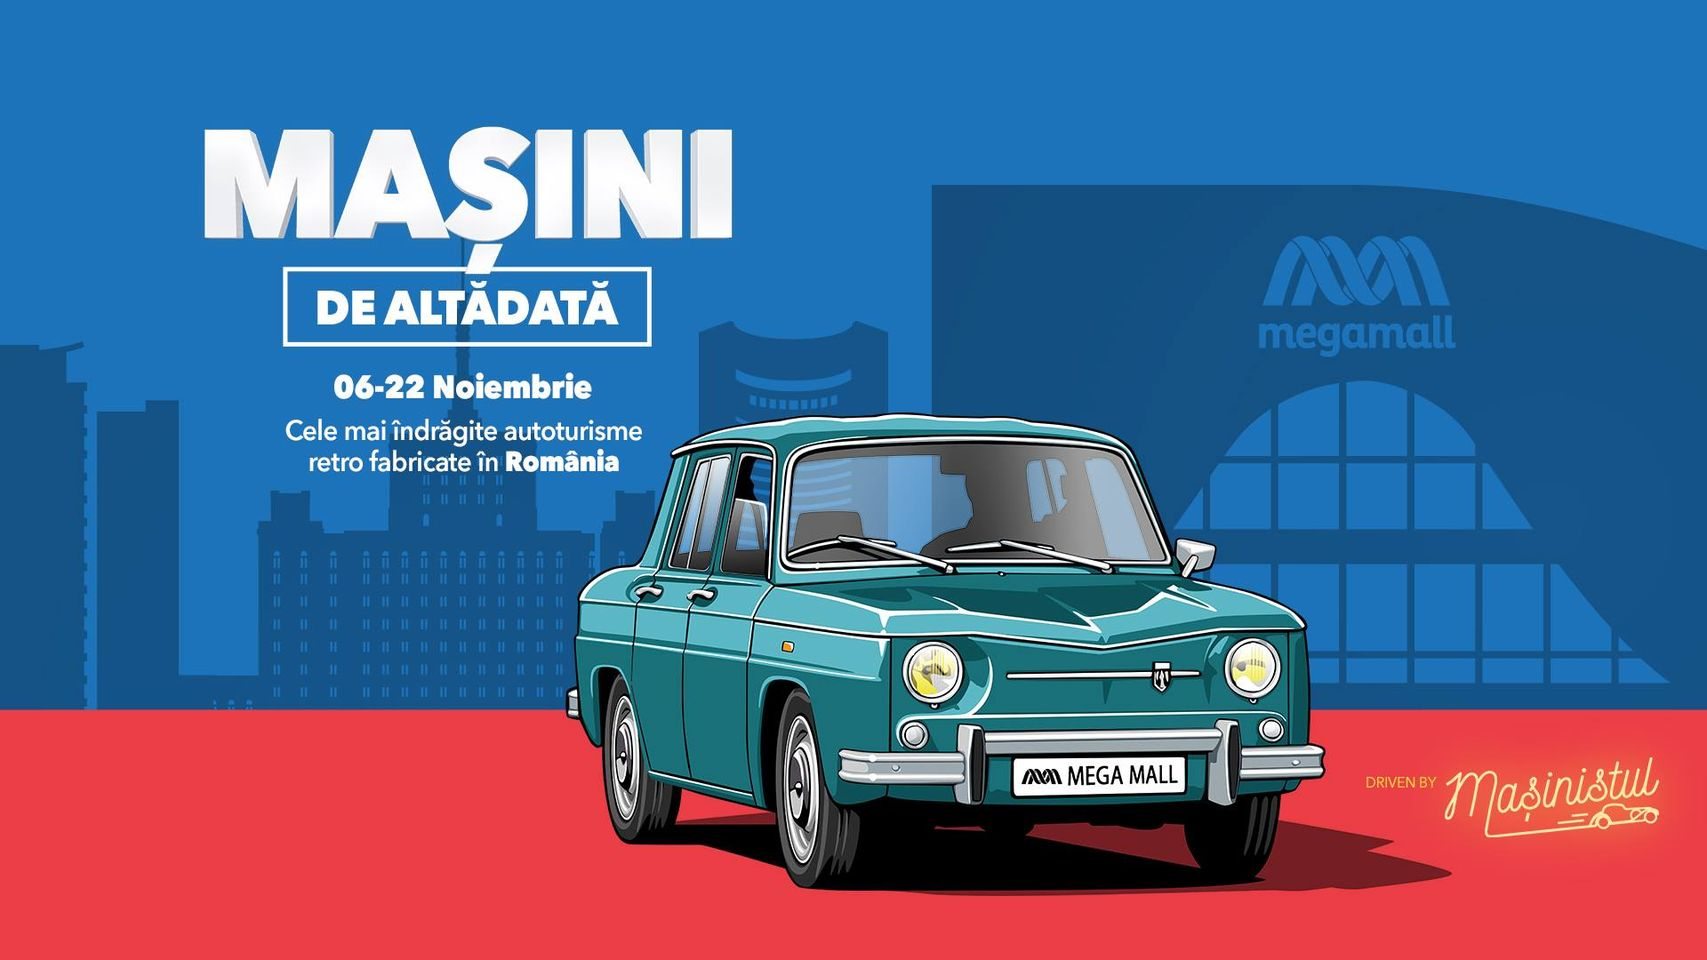 evenimente weekend 6-8 nov  masini de alta data la mega mall